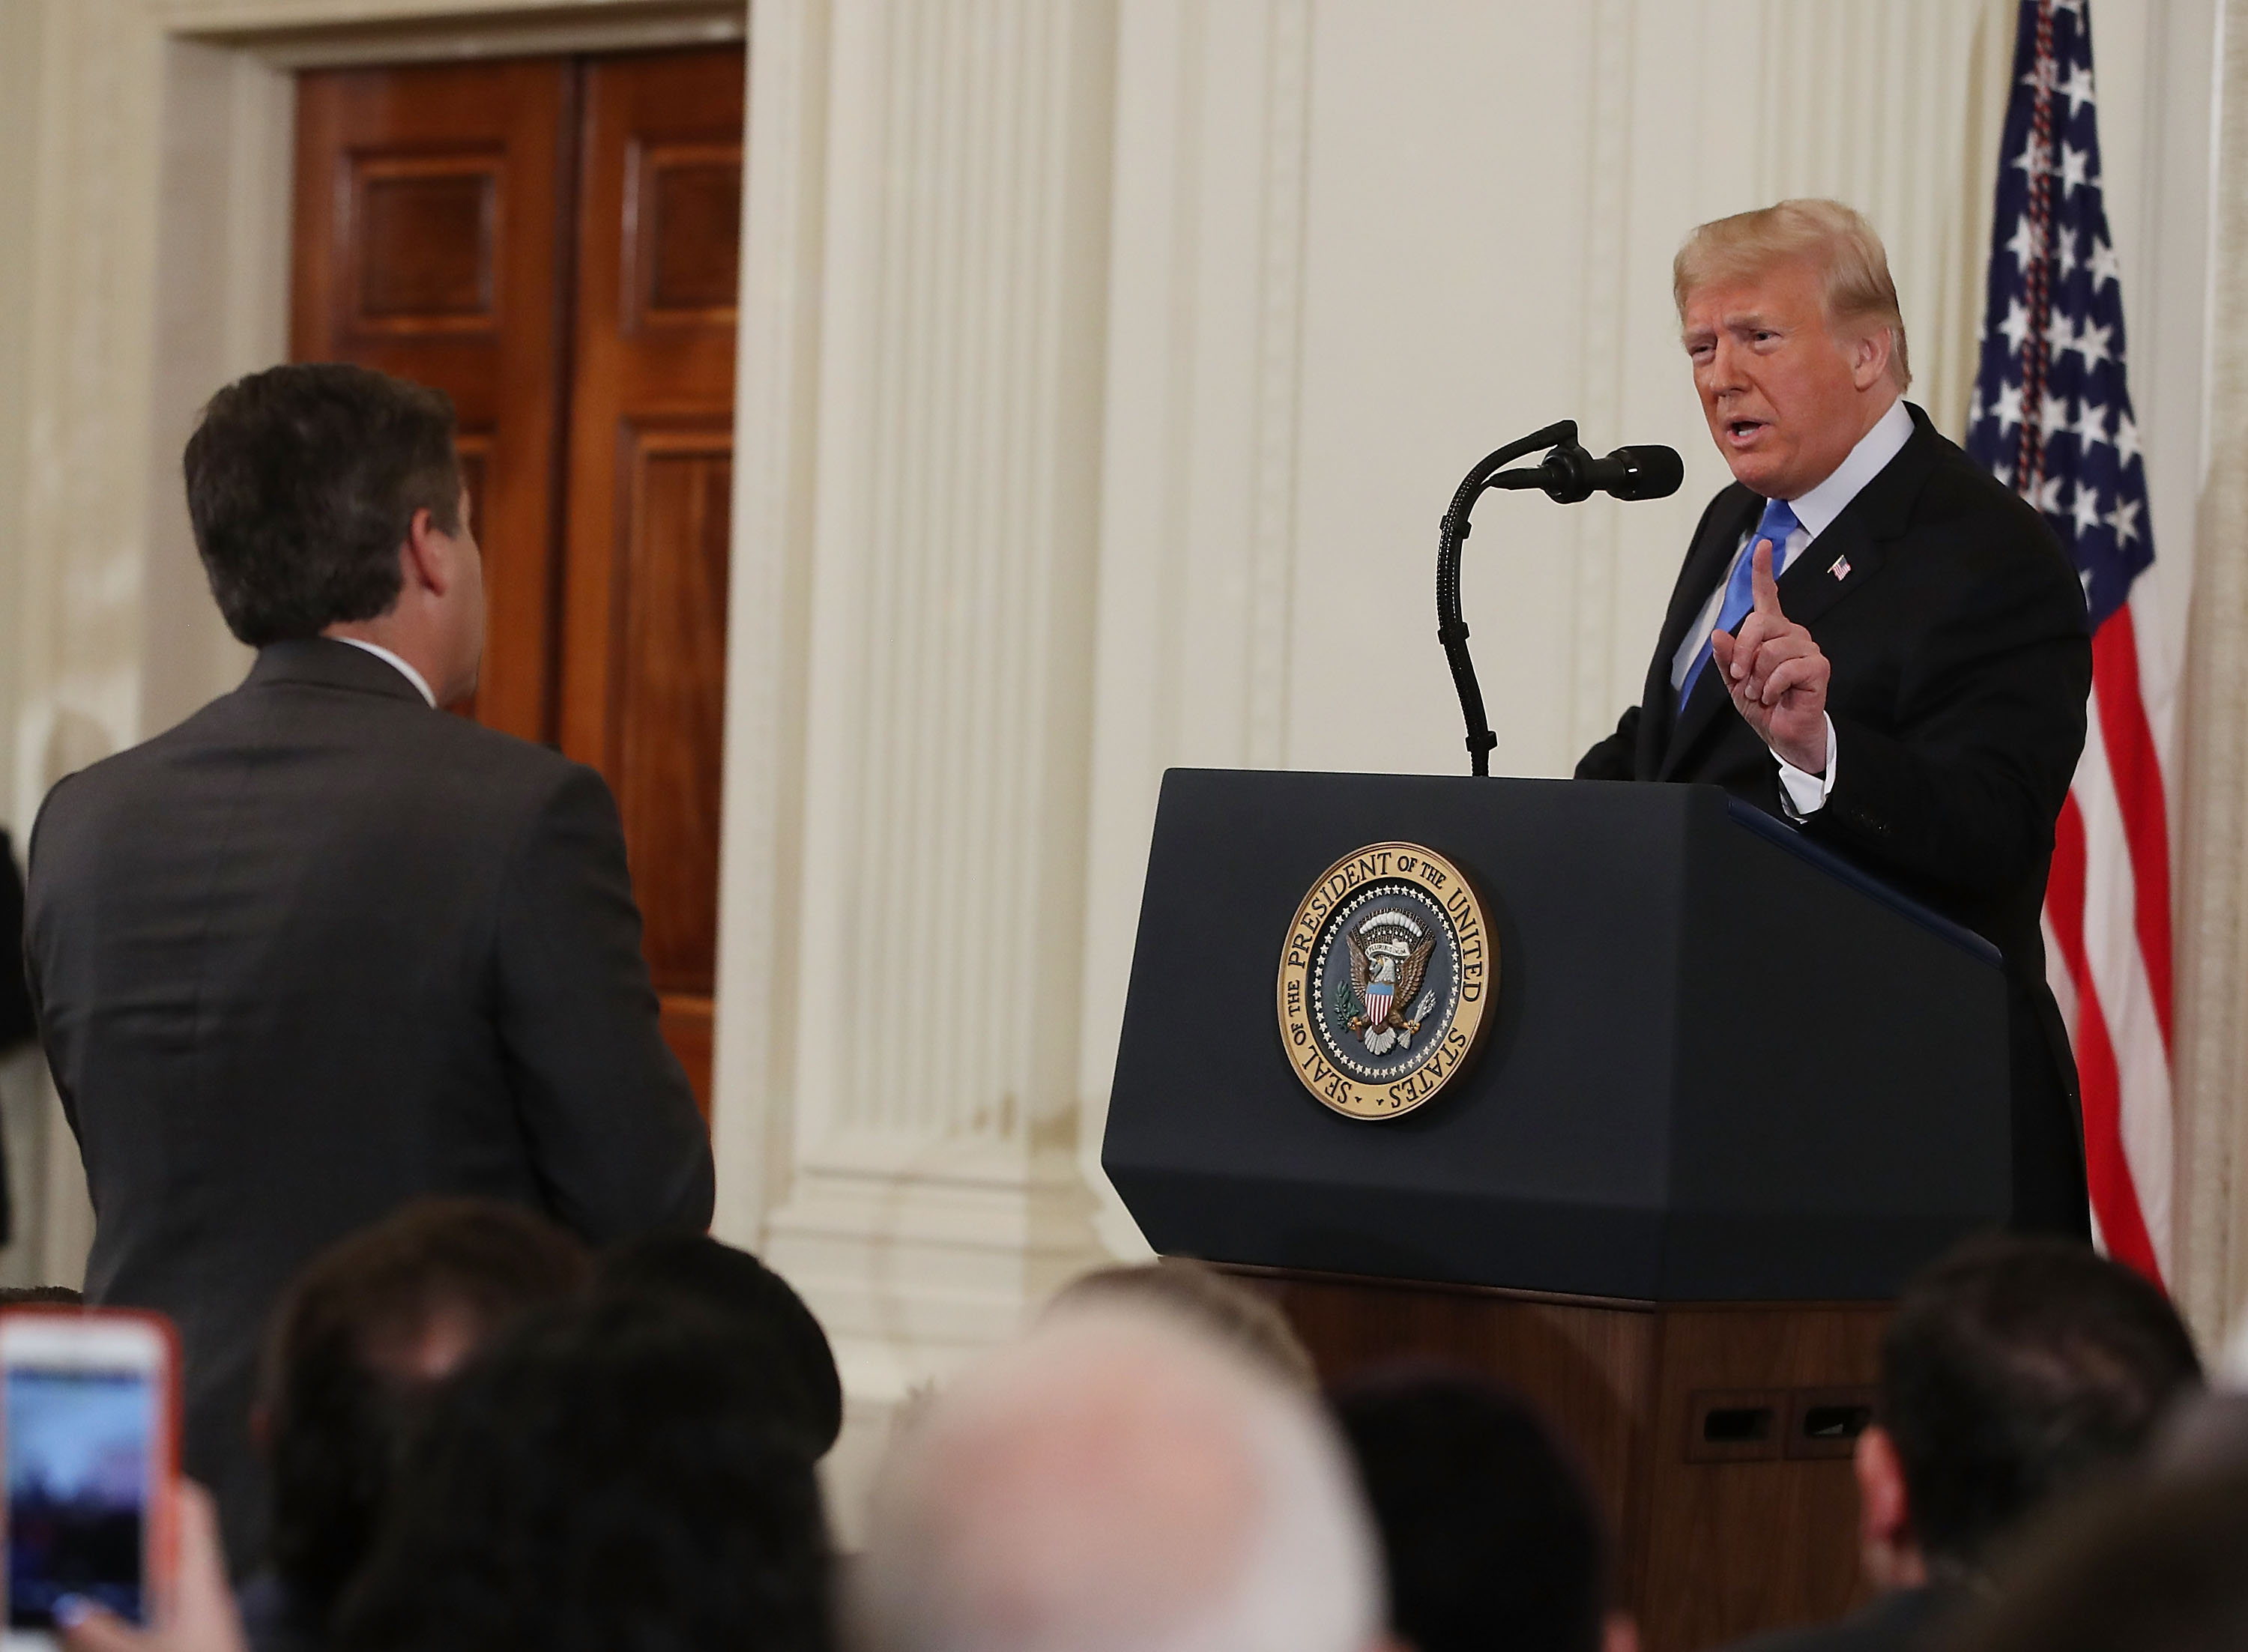 U.S. President Donald Trump gets into an exchange with Jim Acosta of CNN after giving remarks a day after the midterm elections on November 7, 2018 in the East Room of the White House in Washington, DC. (Mark Wilson/Getty Images)